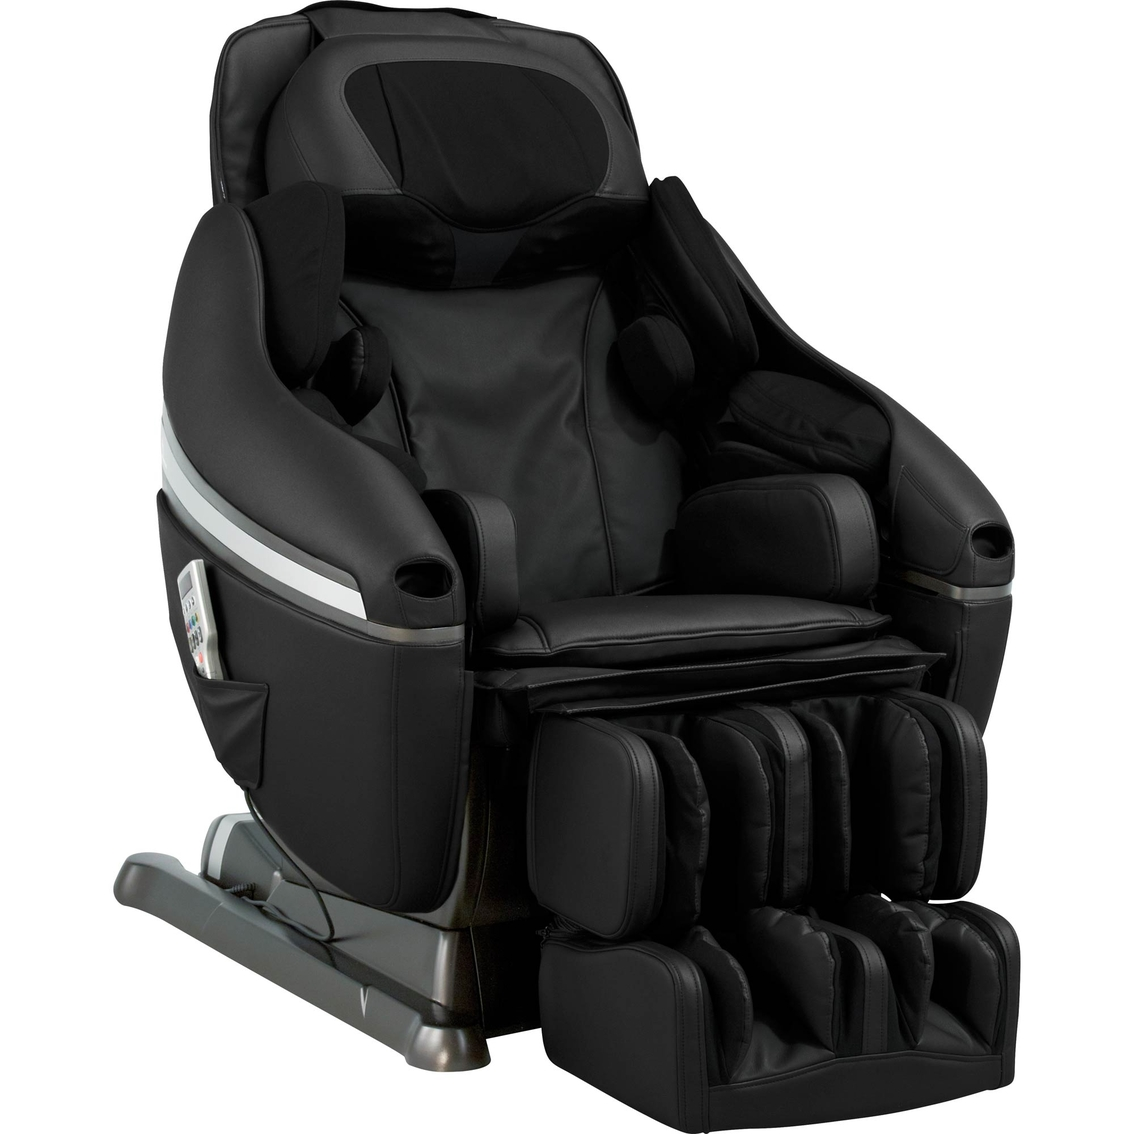 Inada Dreamwave Massage Chair Inada Dreamwave Massage Chair True Black Chairs